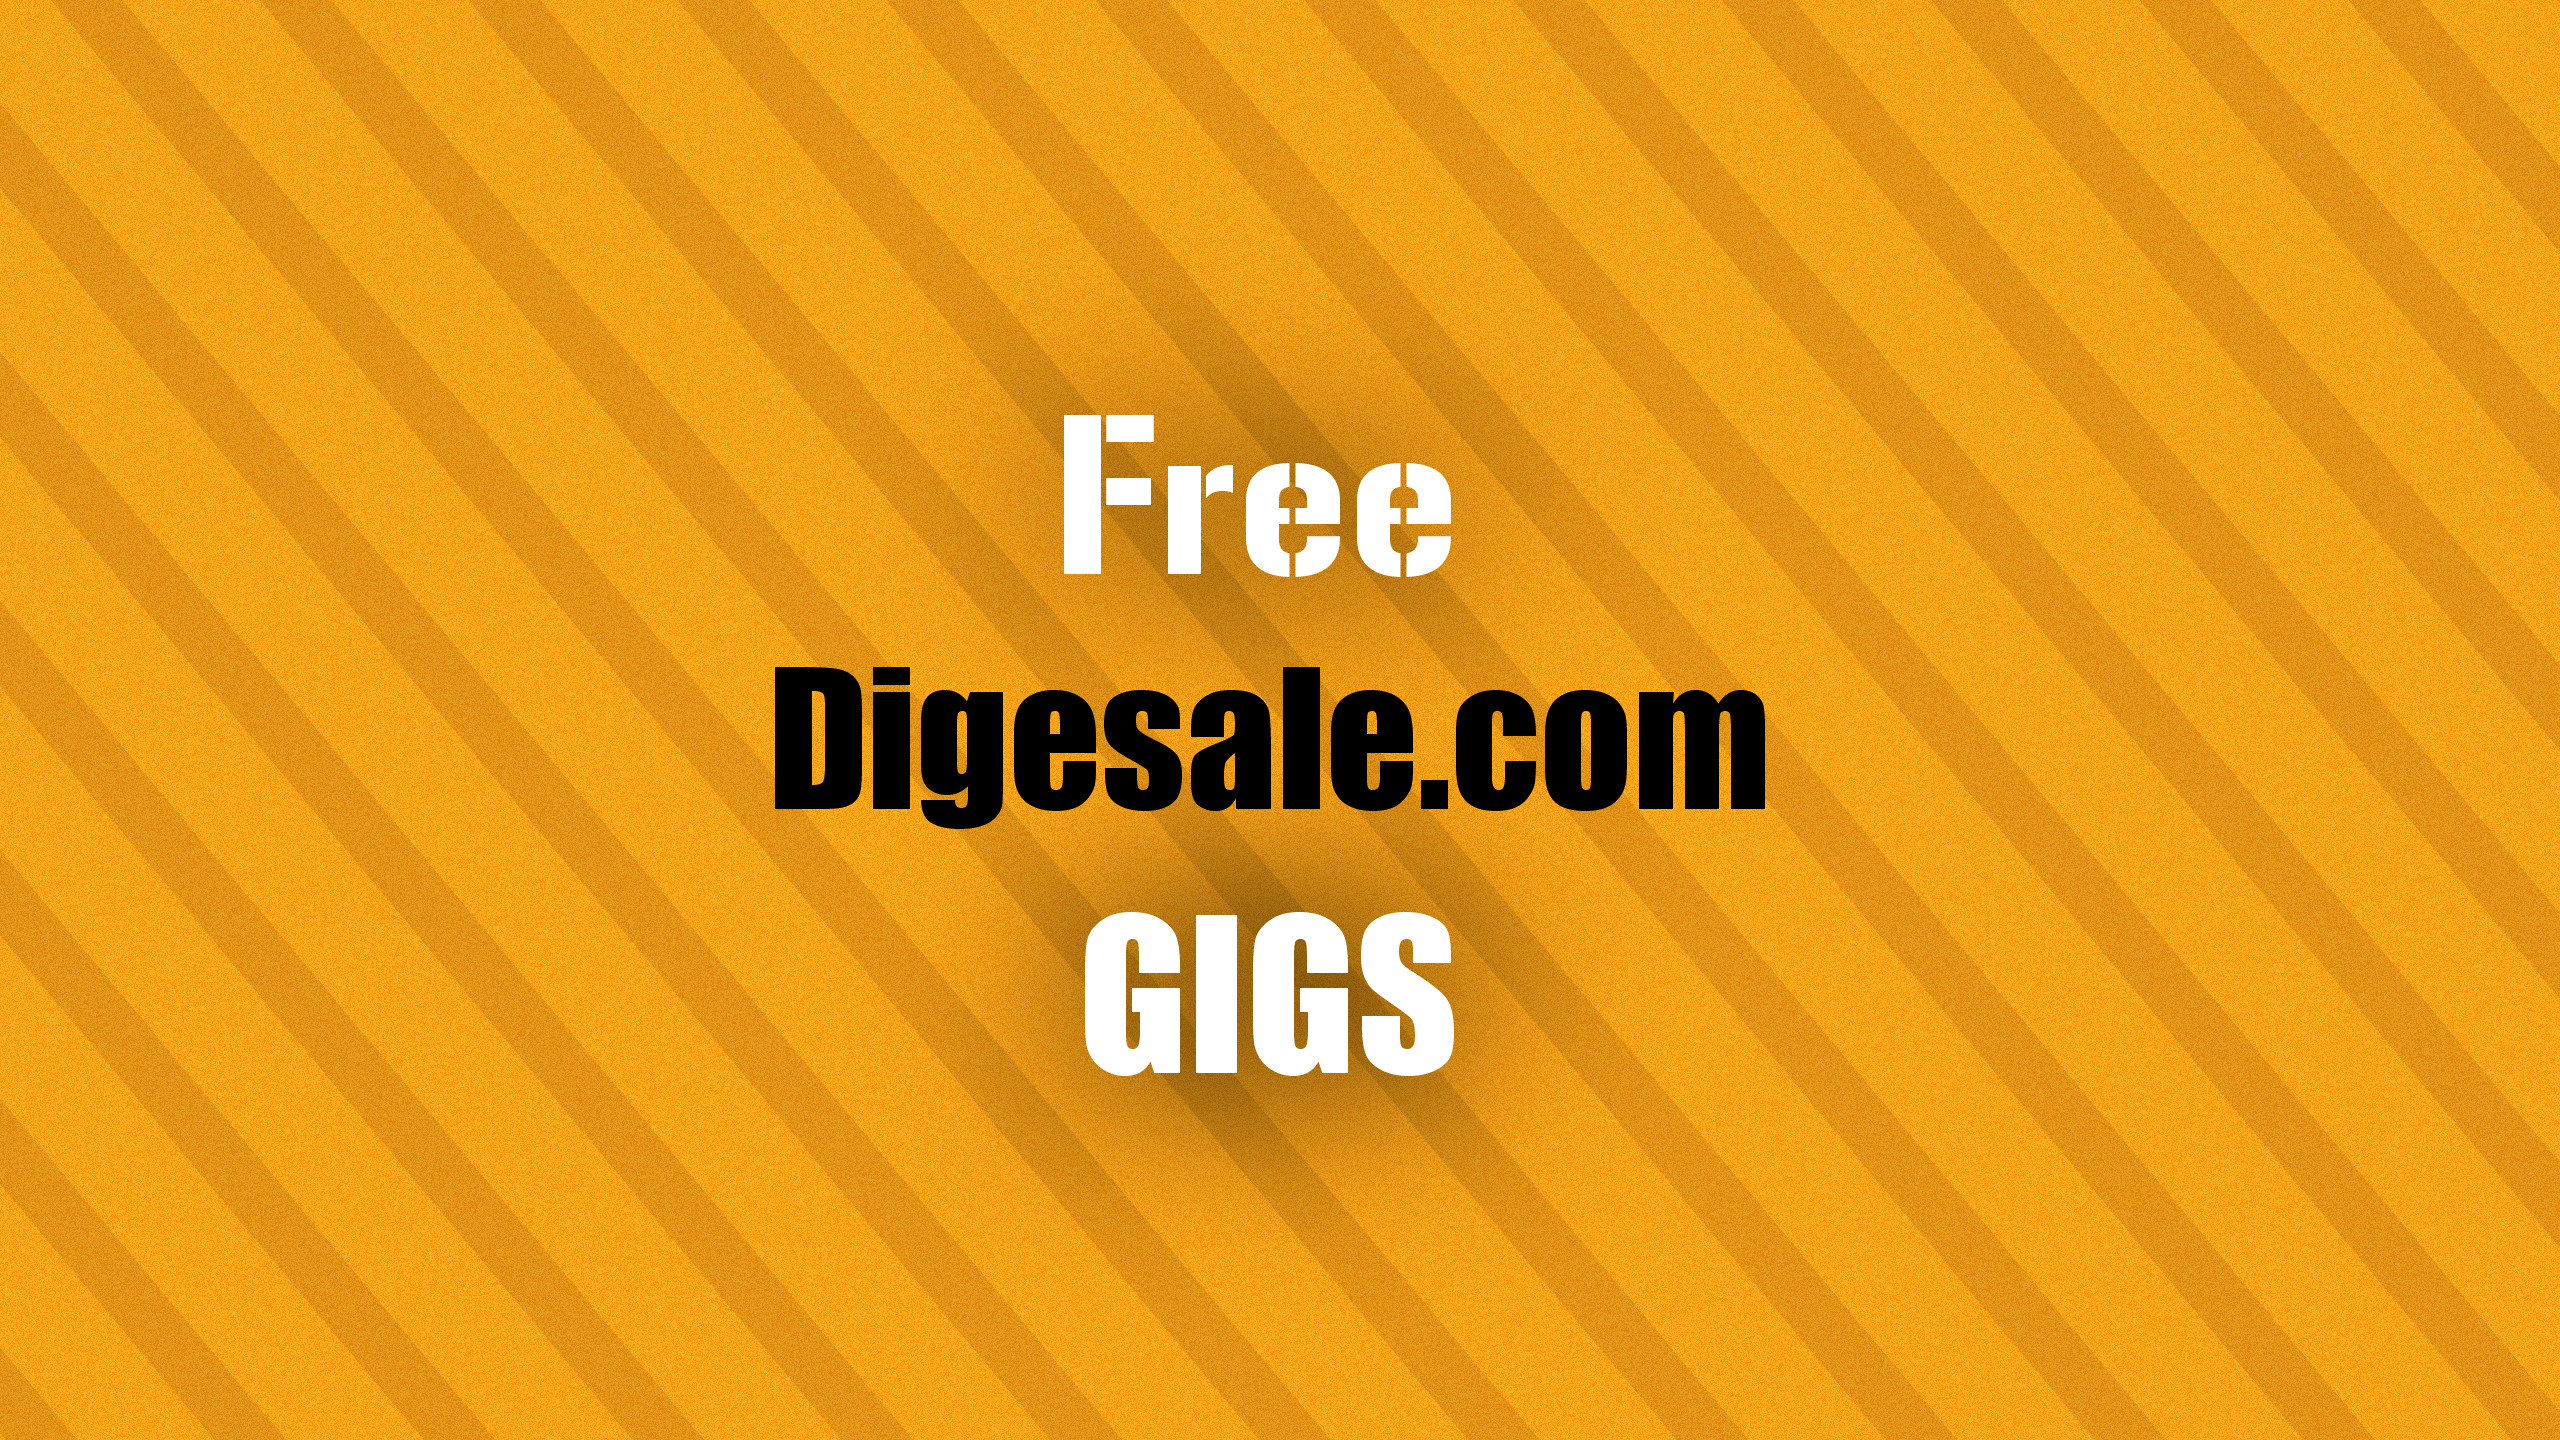 Free Bonus Offers on Digesale Orange Background Photo